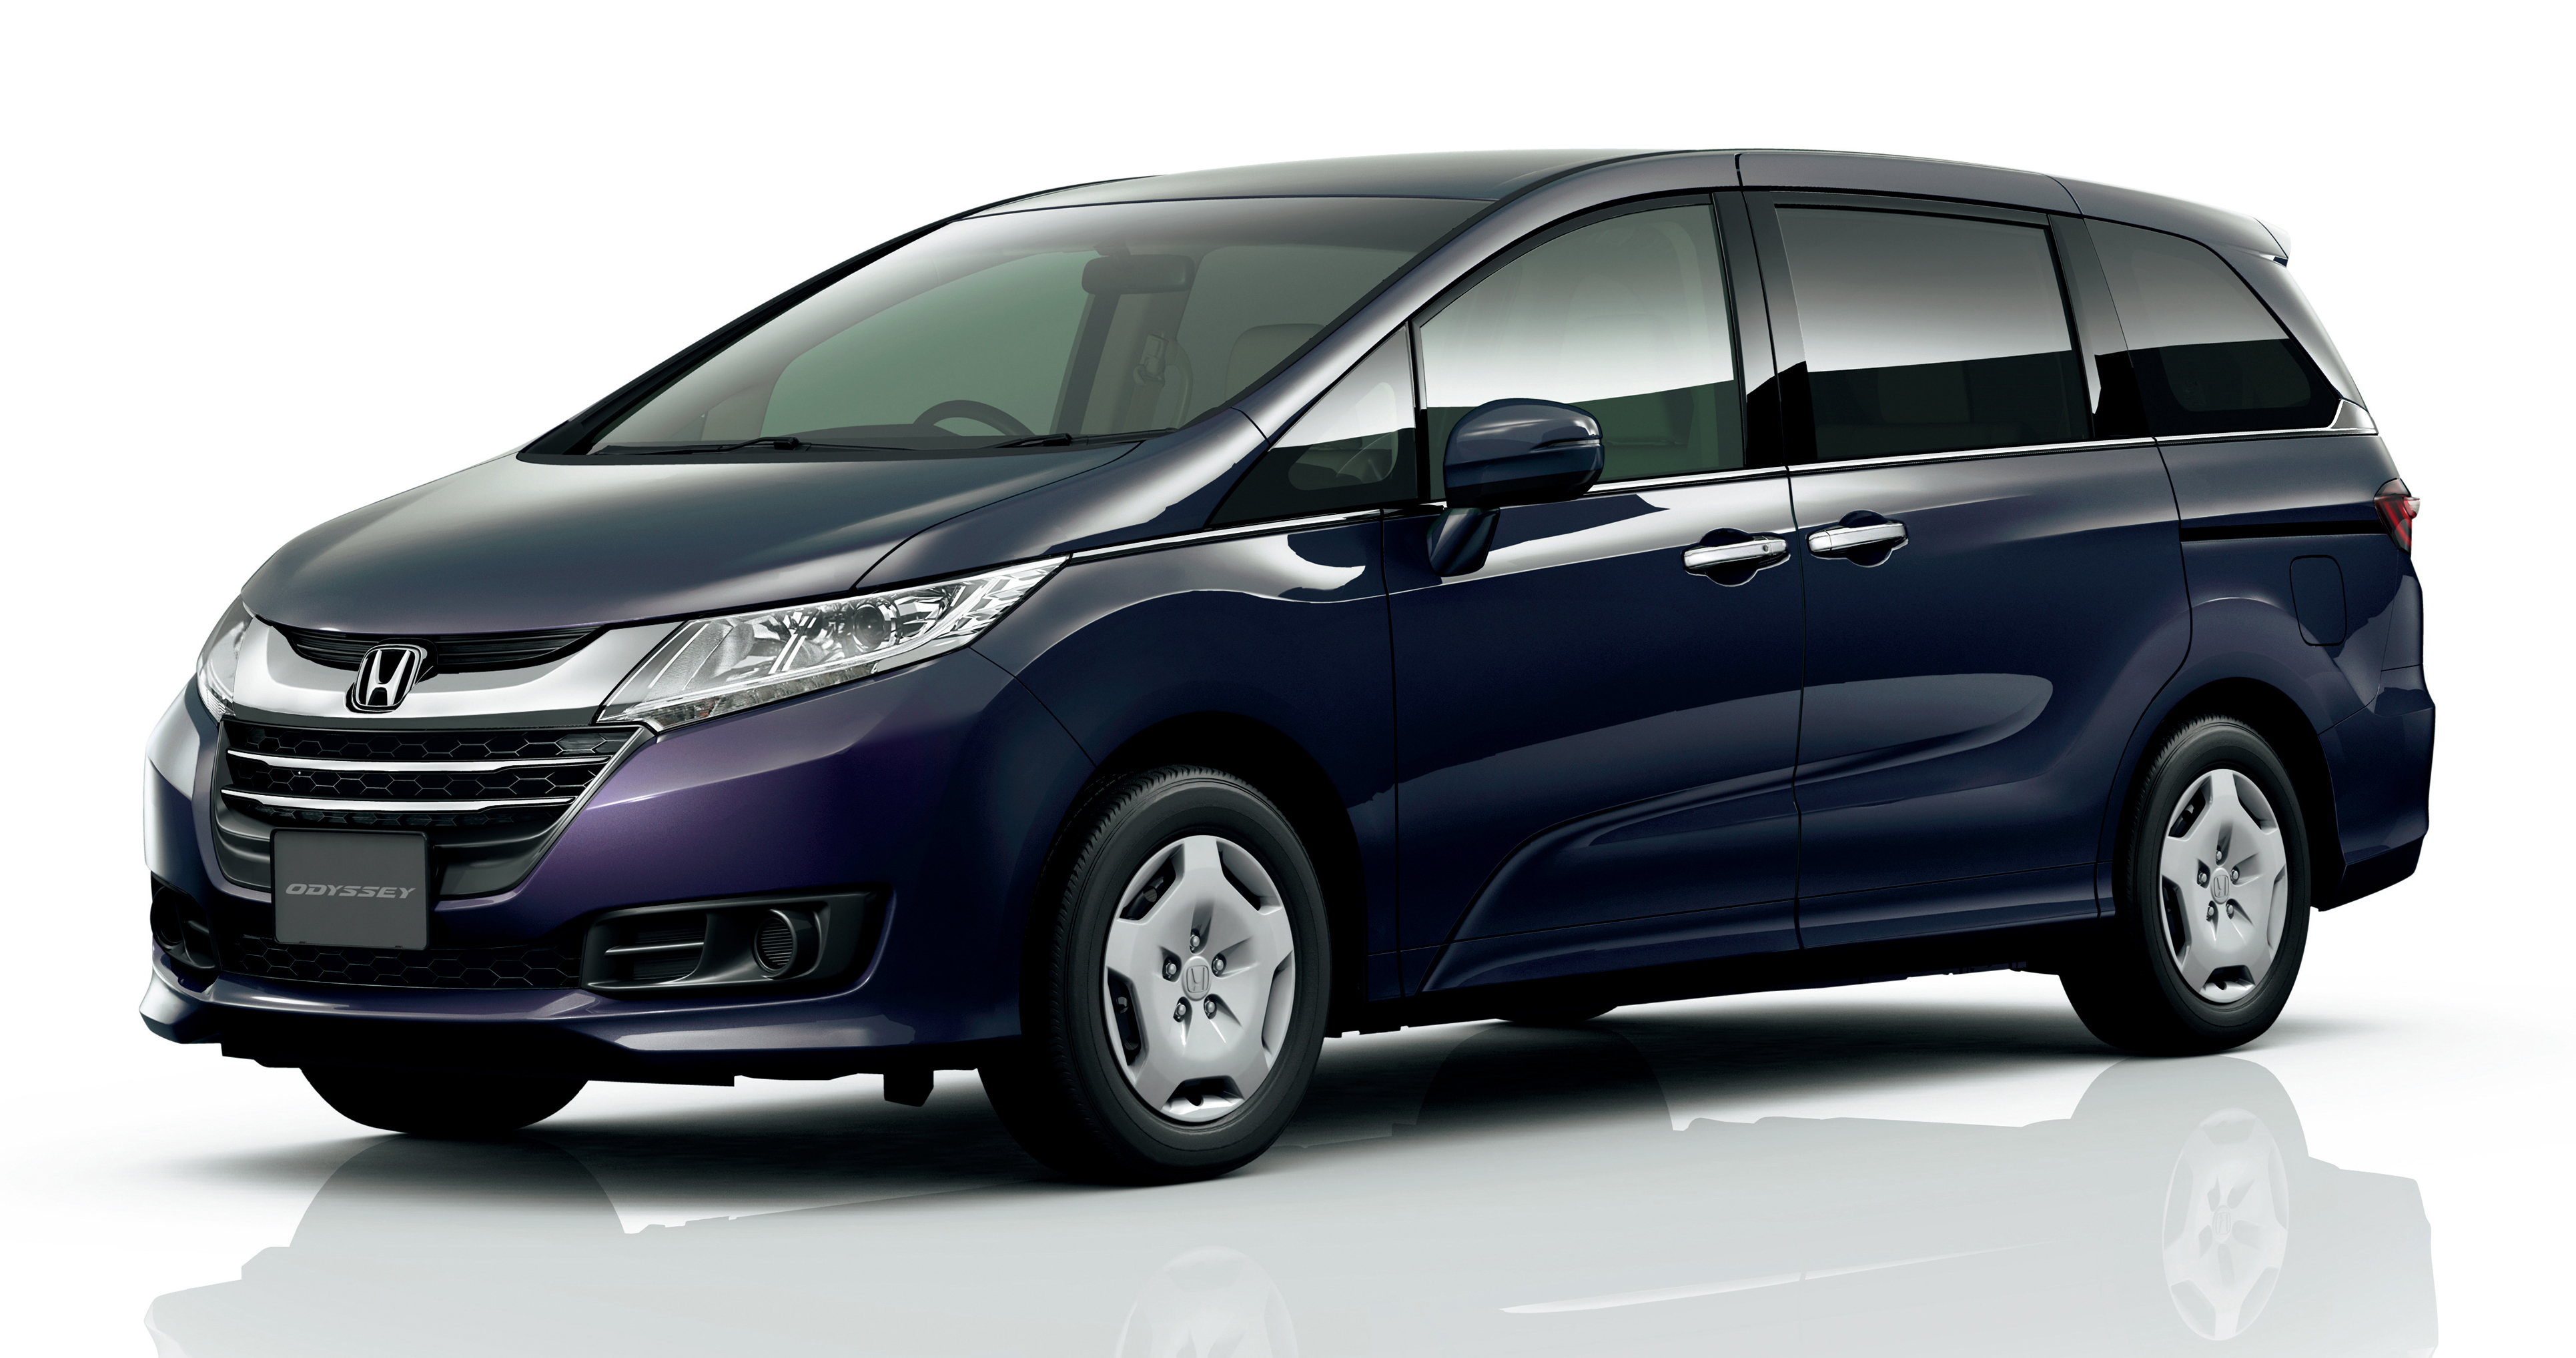 Honda Odyssey 2017 Honda Odyssey – fifth-gen launched in Japan Image 207488